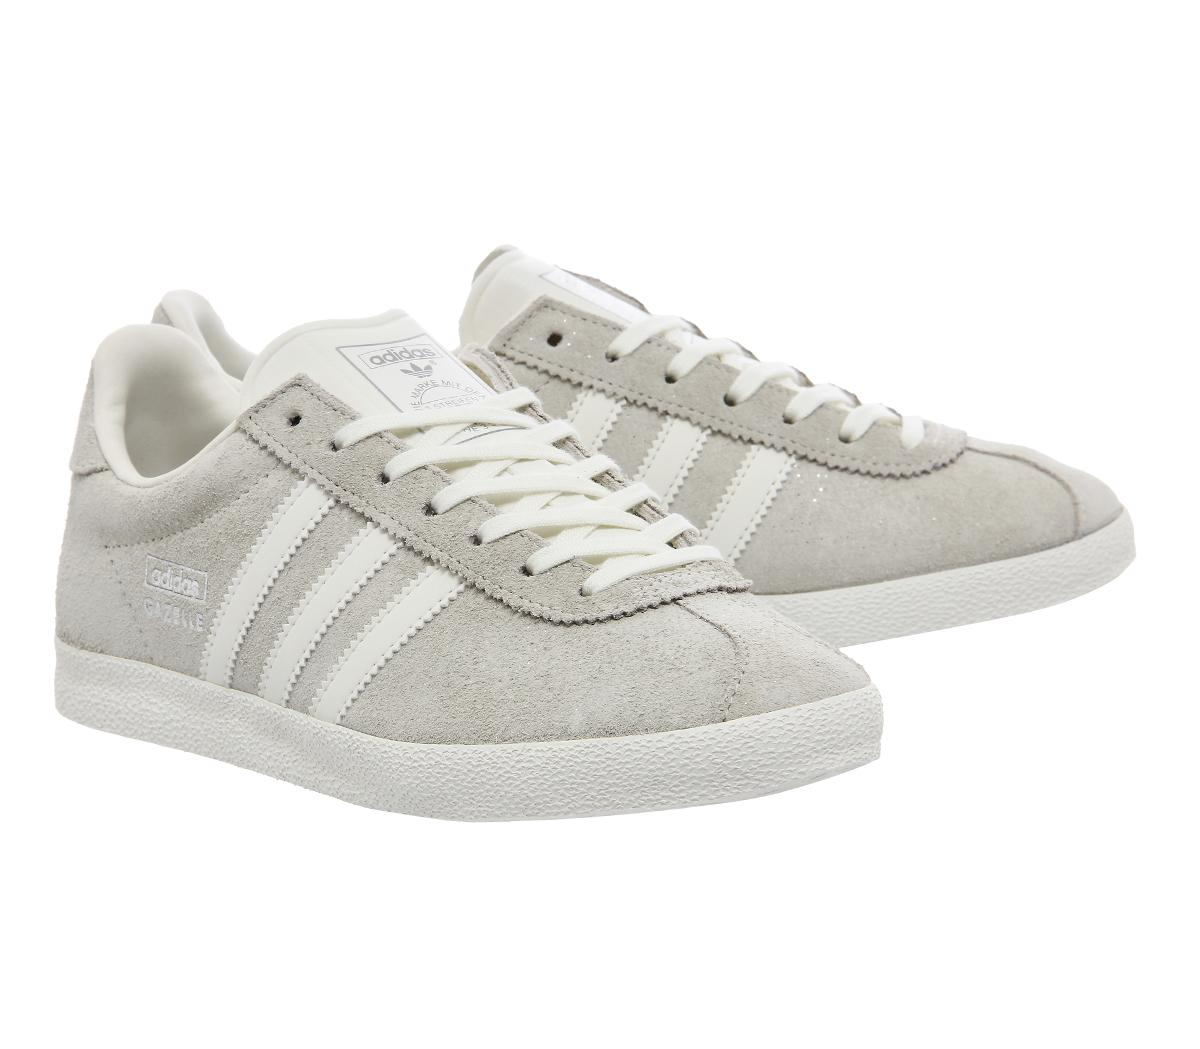 Gallery. Women\u0027s Adidas Gazelle